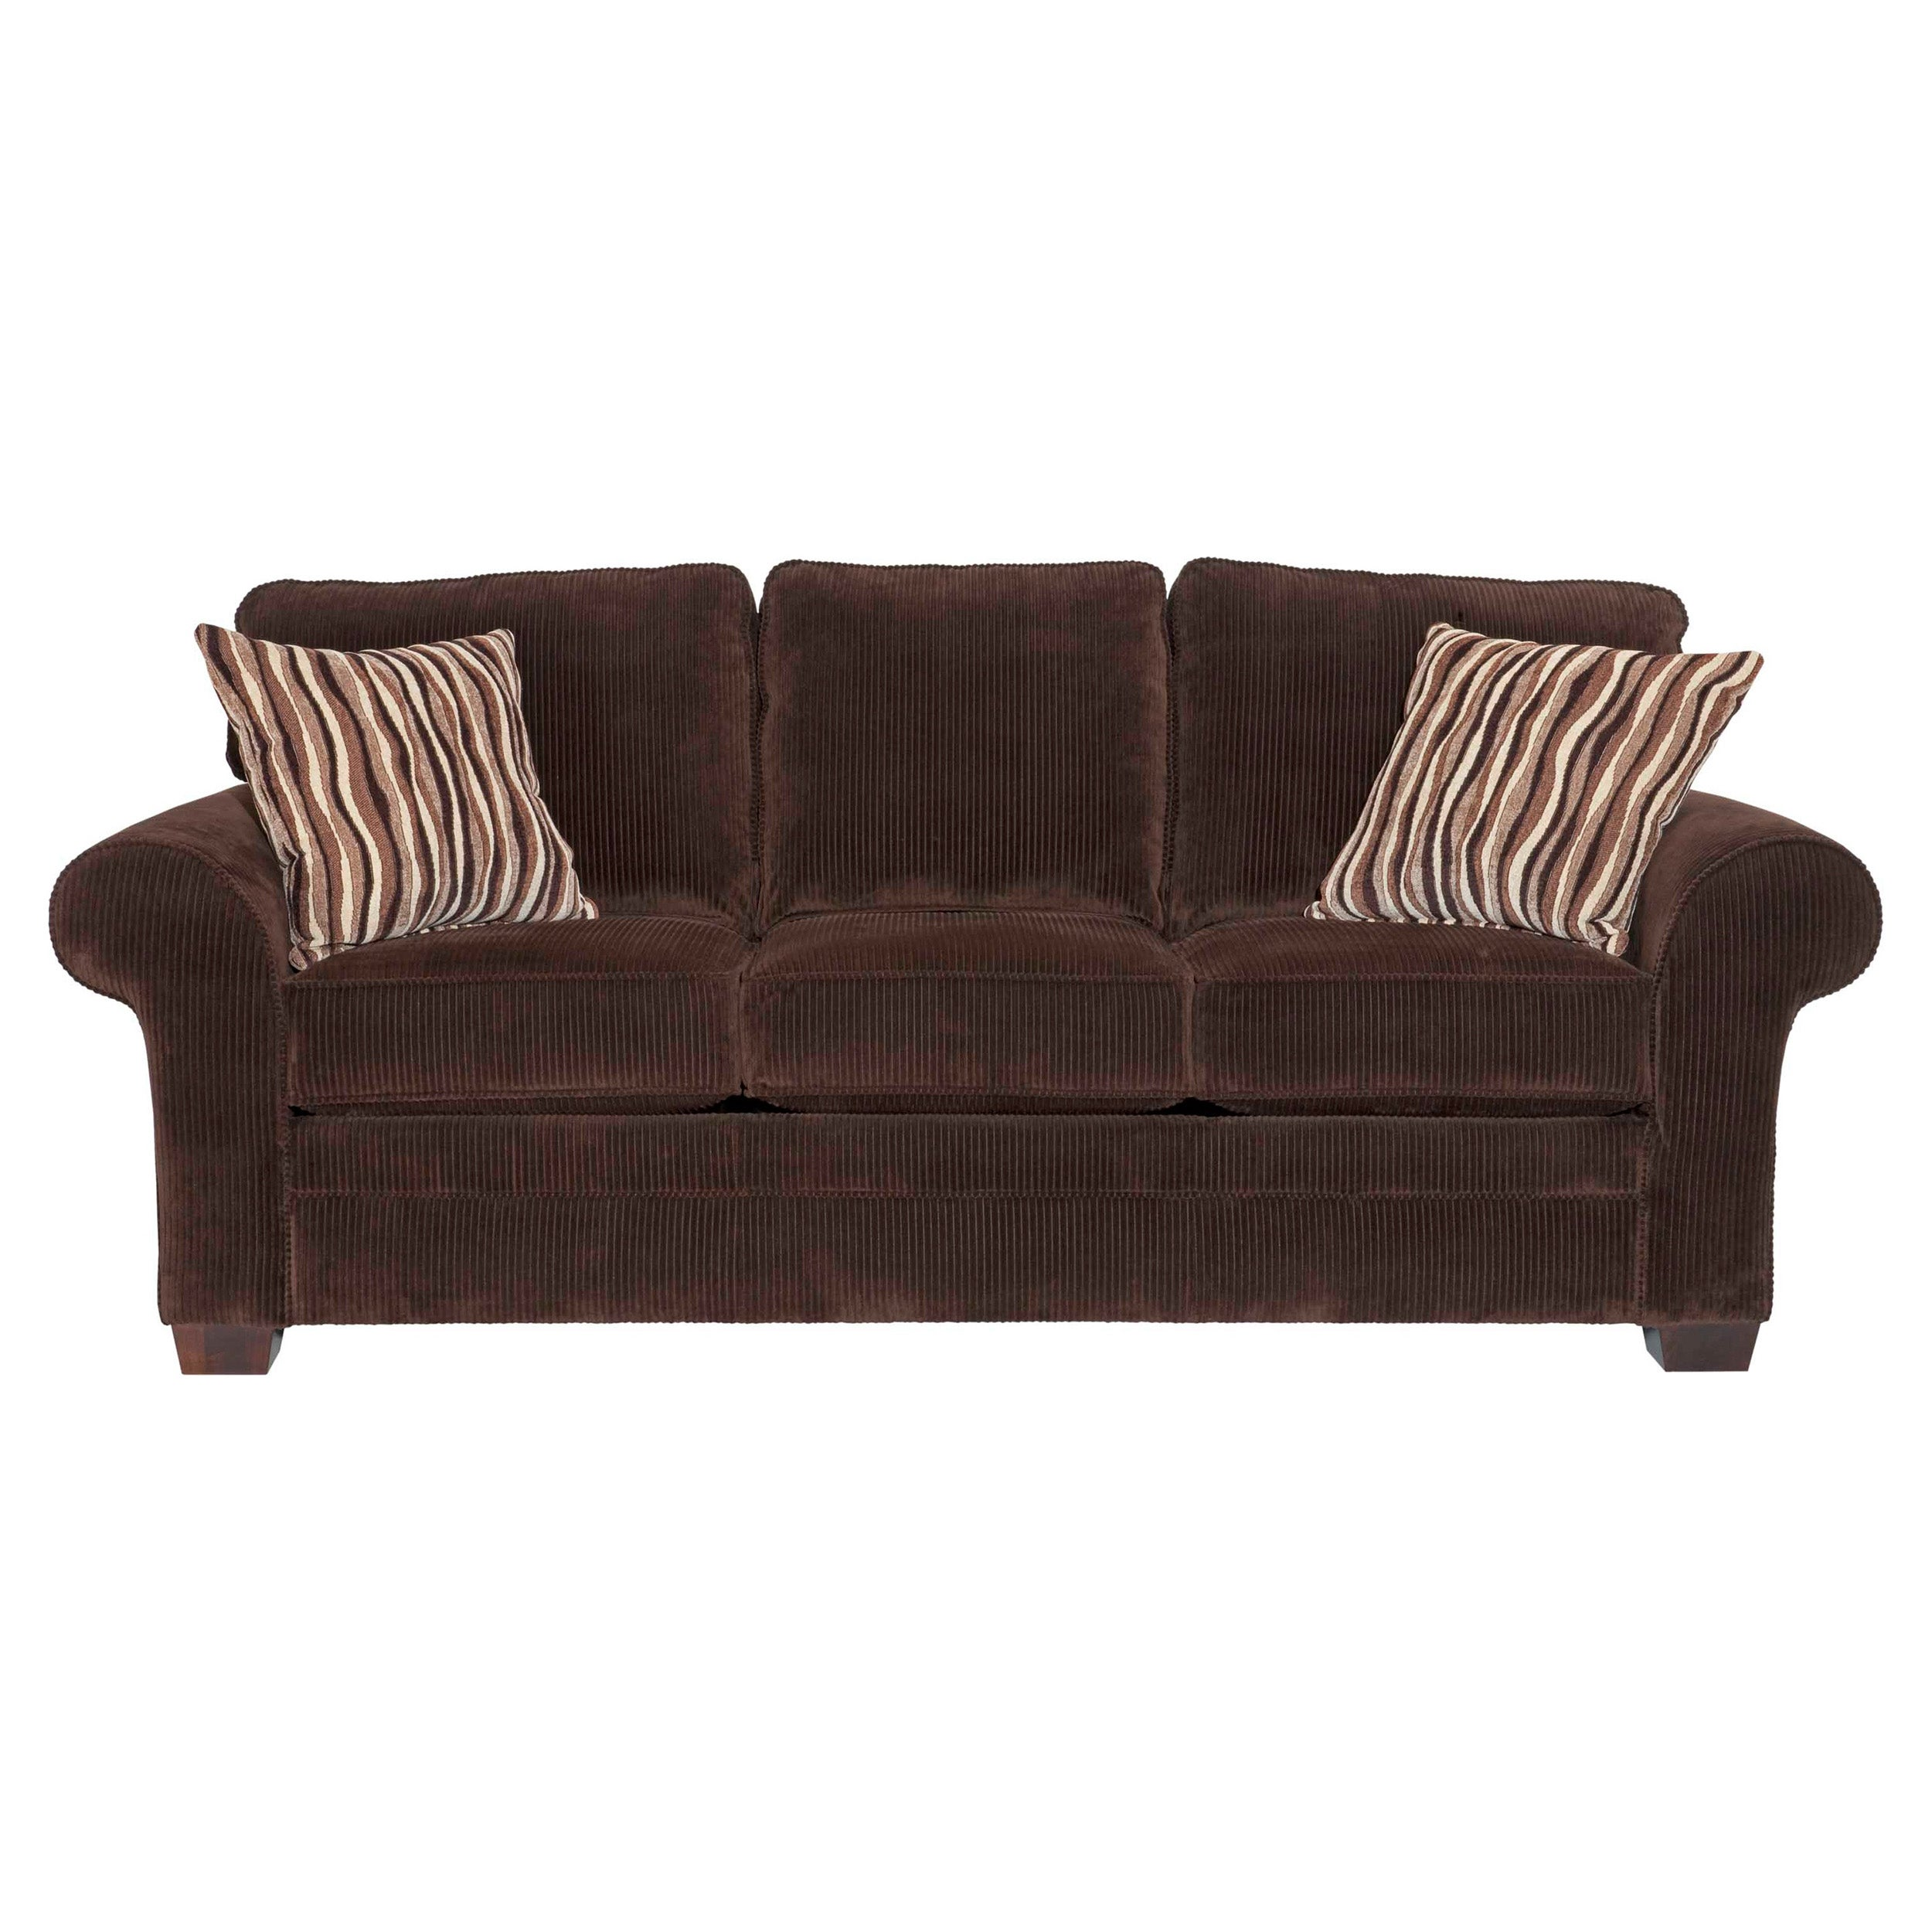 Broyhill Zoey Dark Chocolate Queen Sofa Sleeper Free Shipping